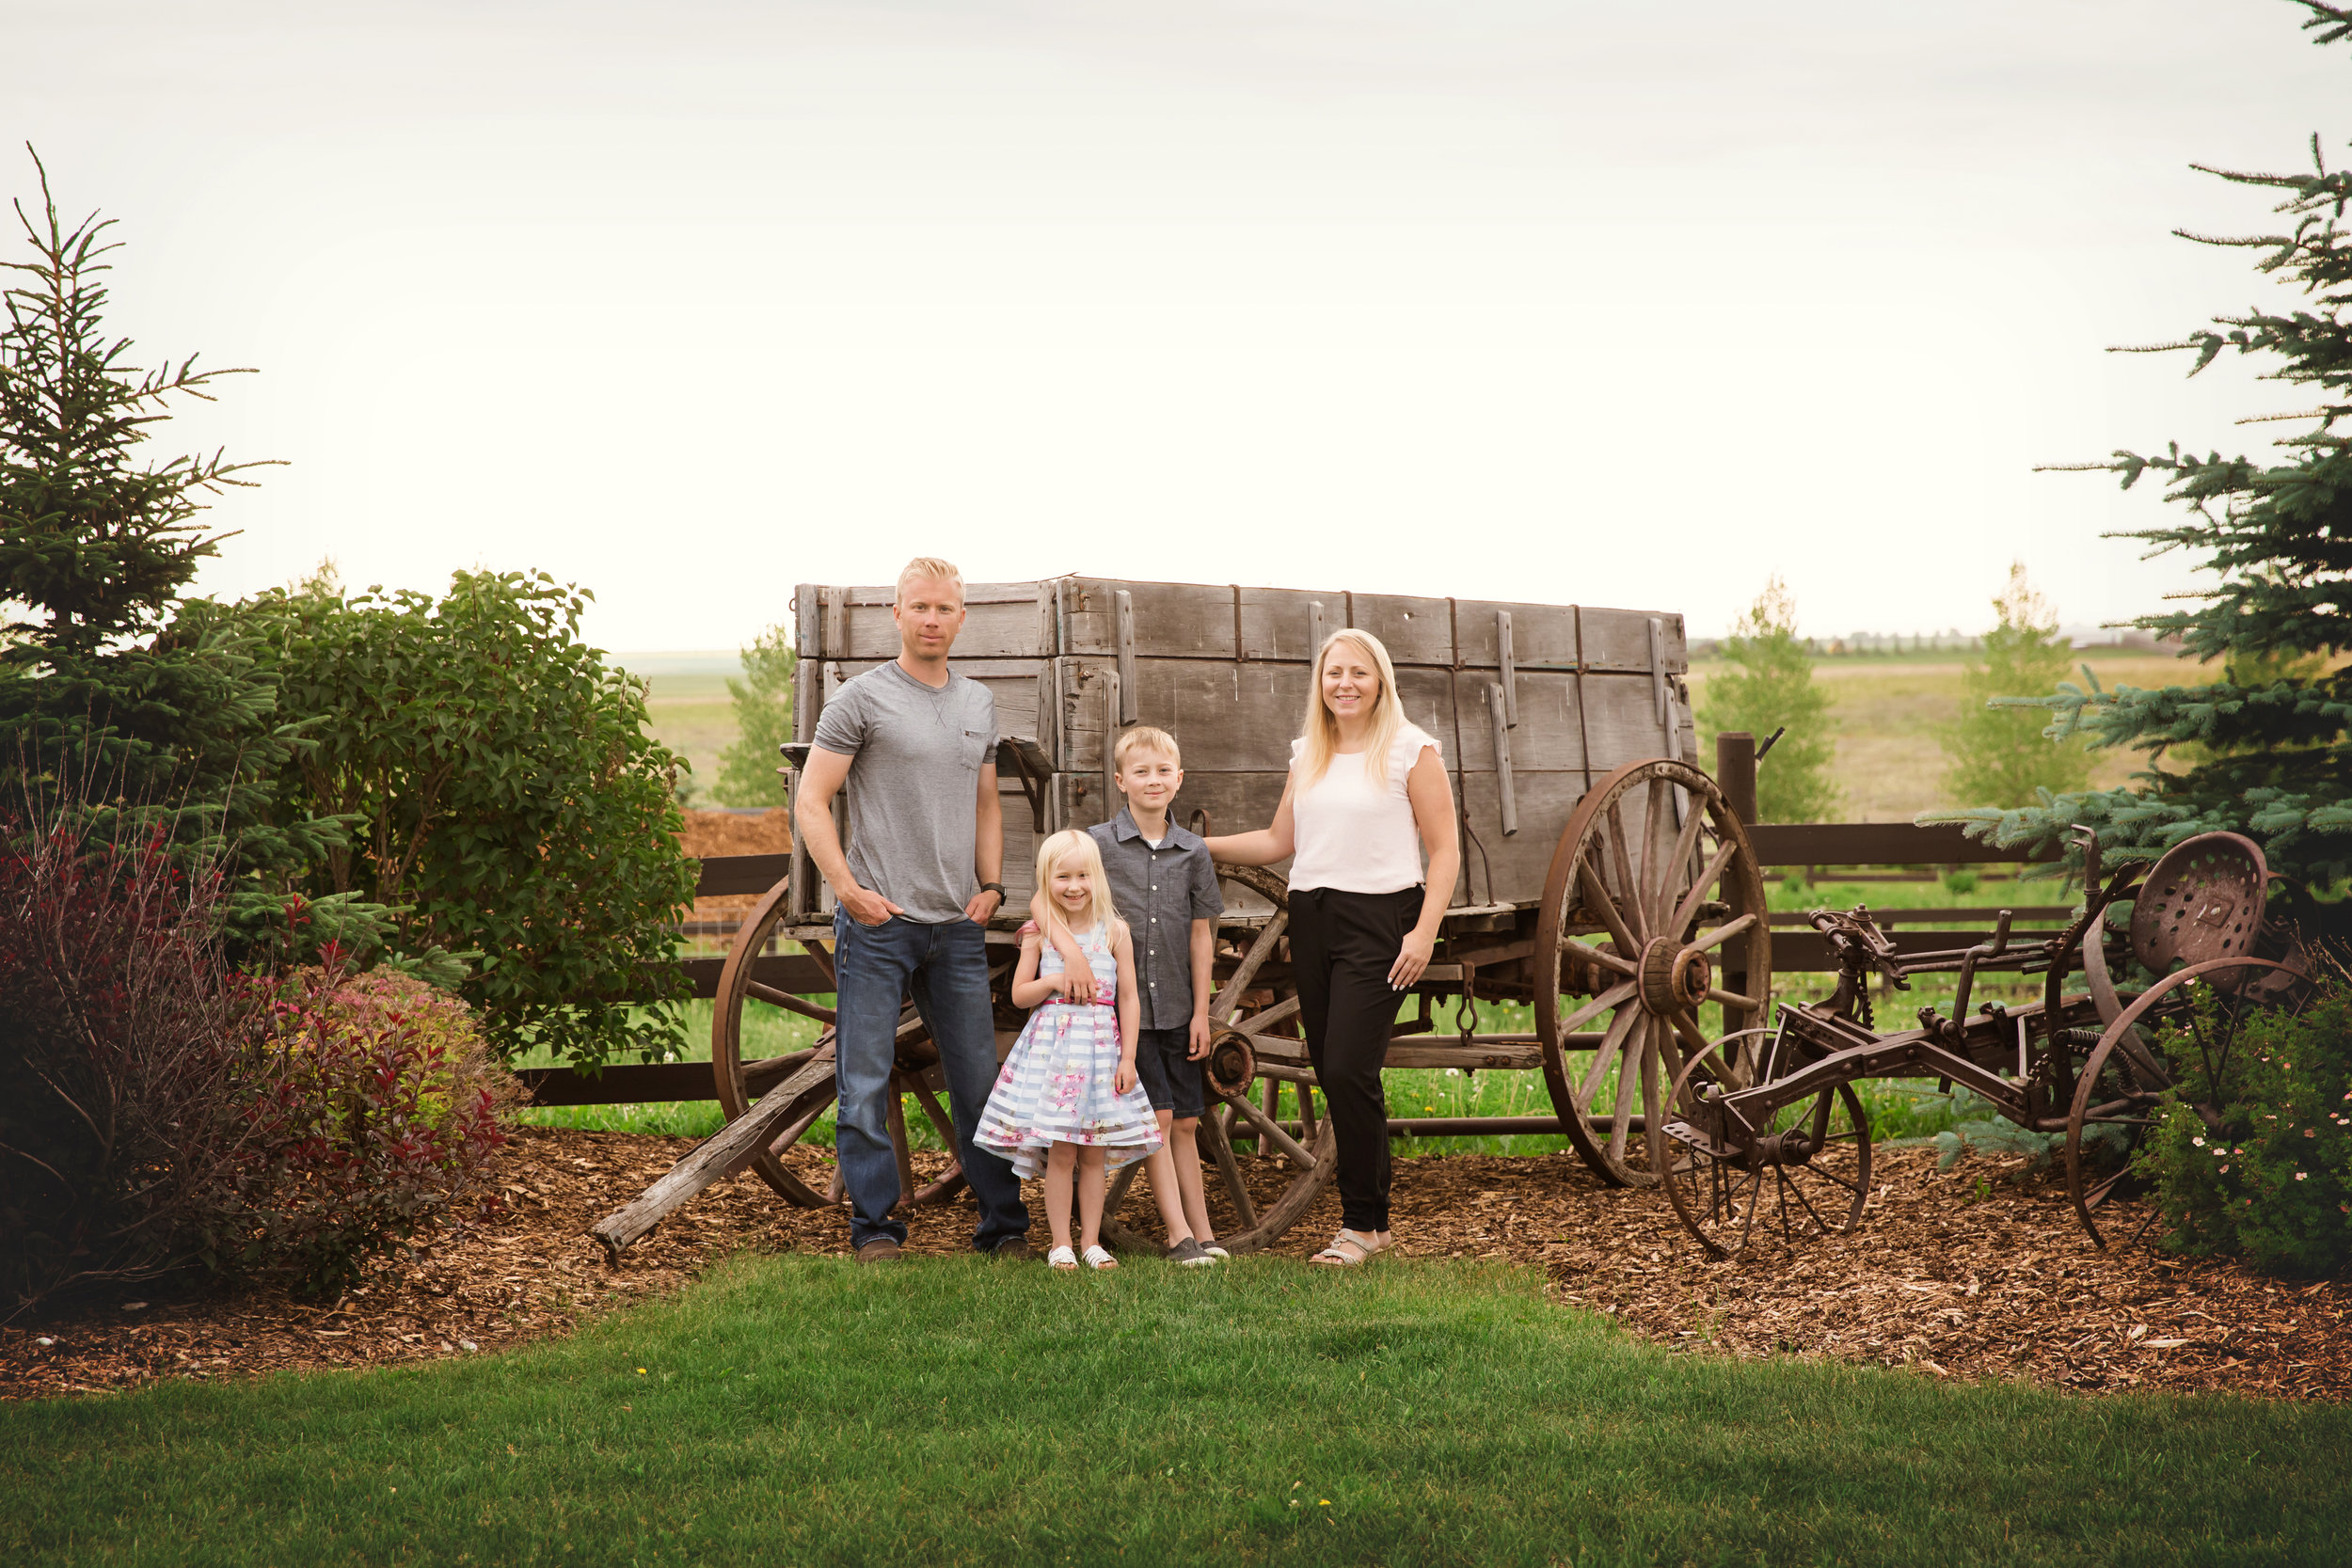 Family of 4. Calgary family photographer. Milashka Photography.